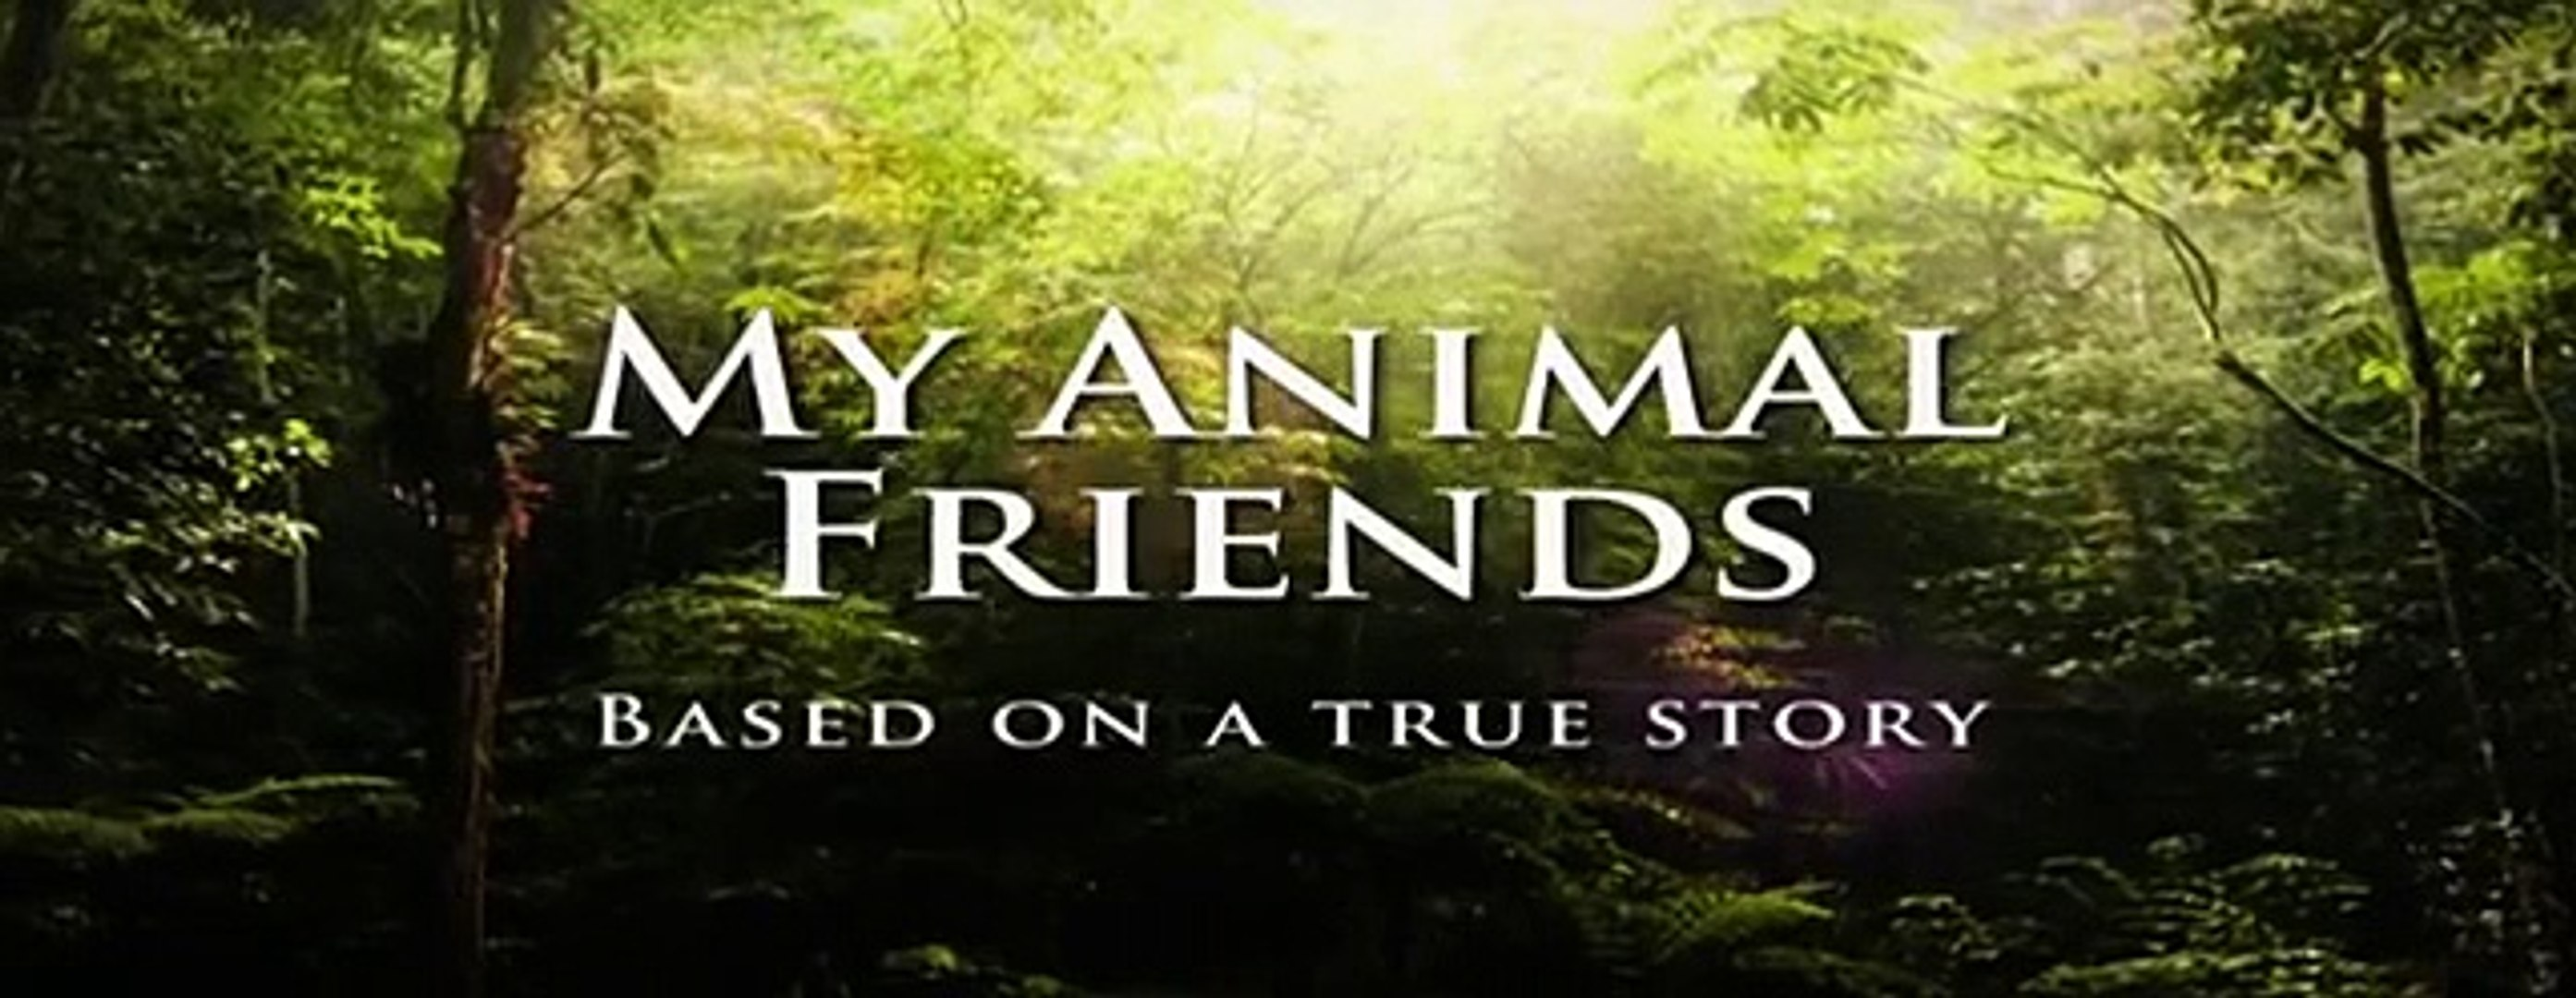 Dingo - My animal friends - Animals Documentary -Kids educational Videos